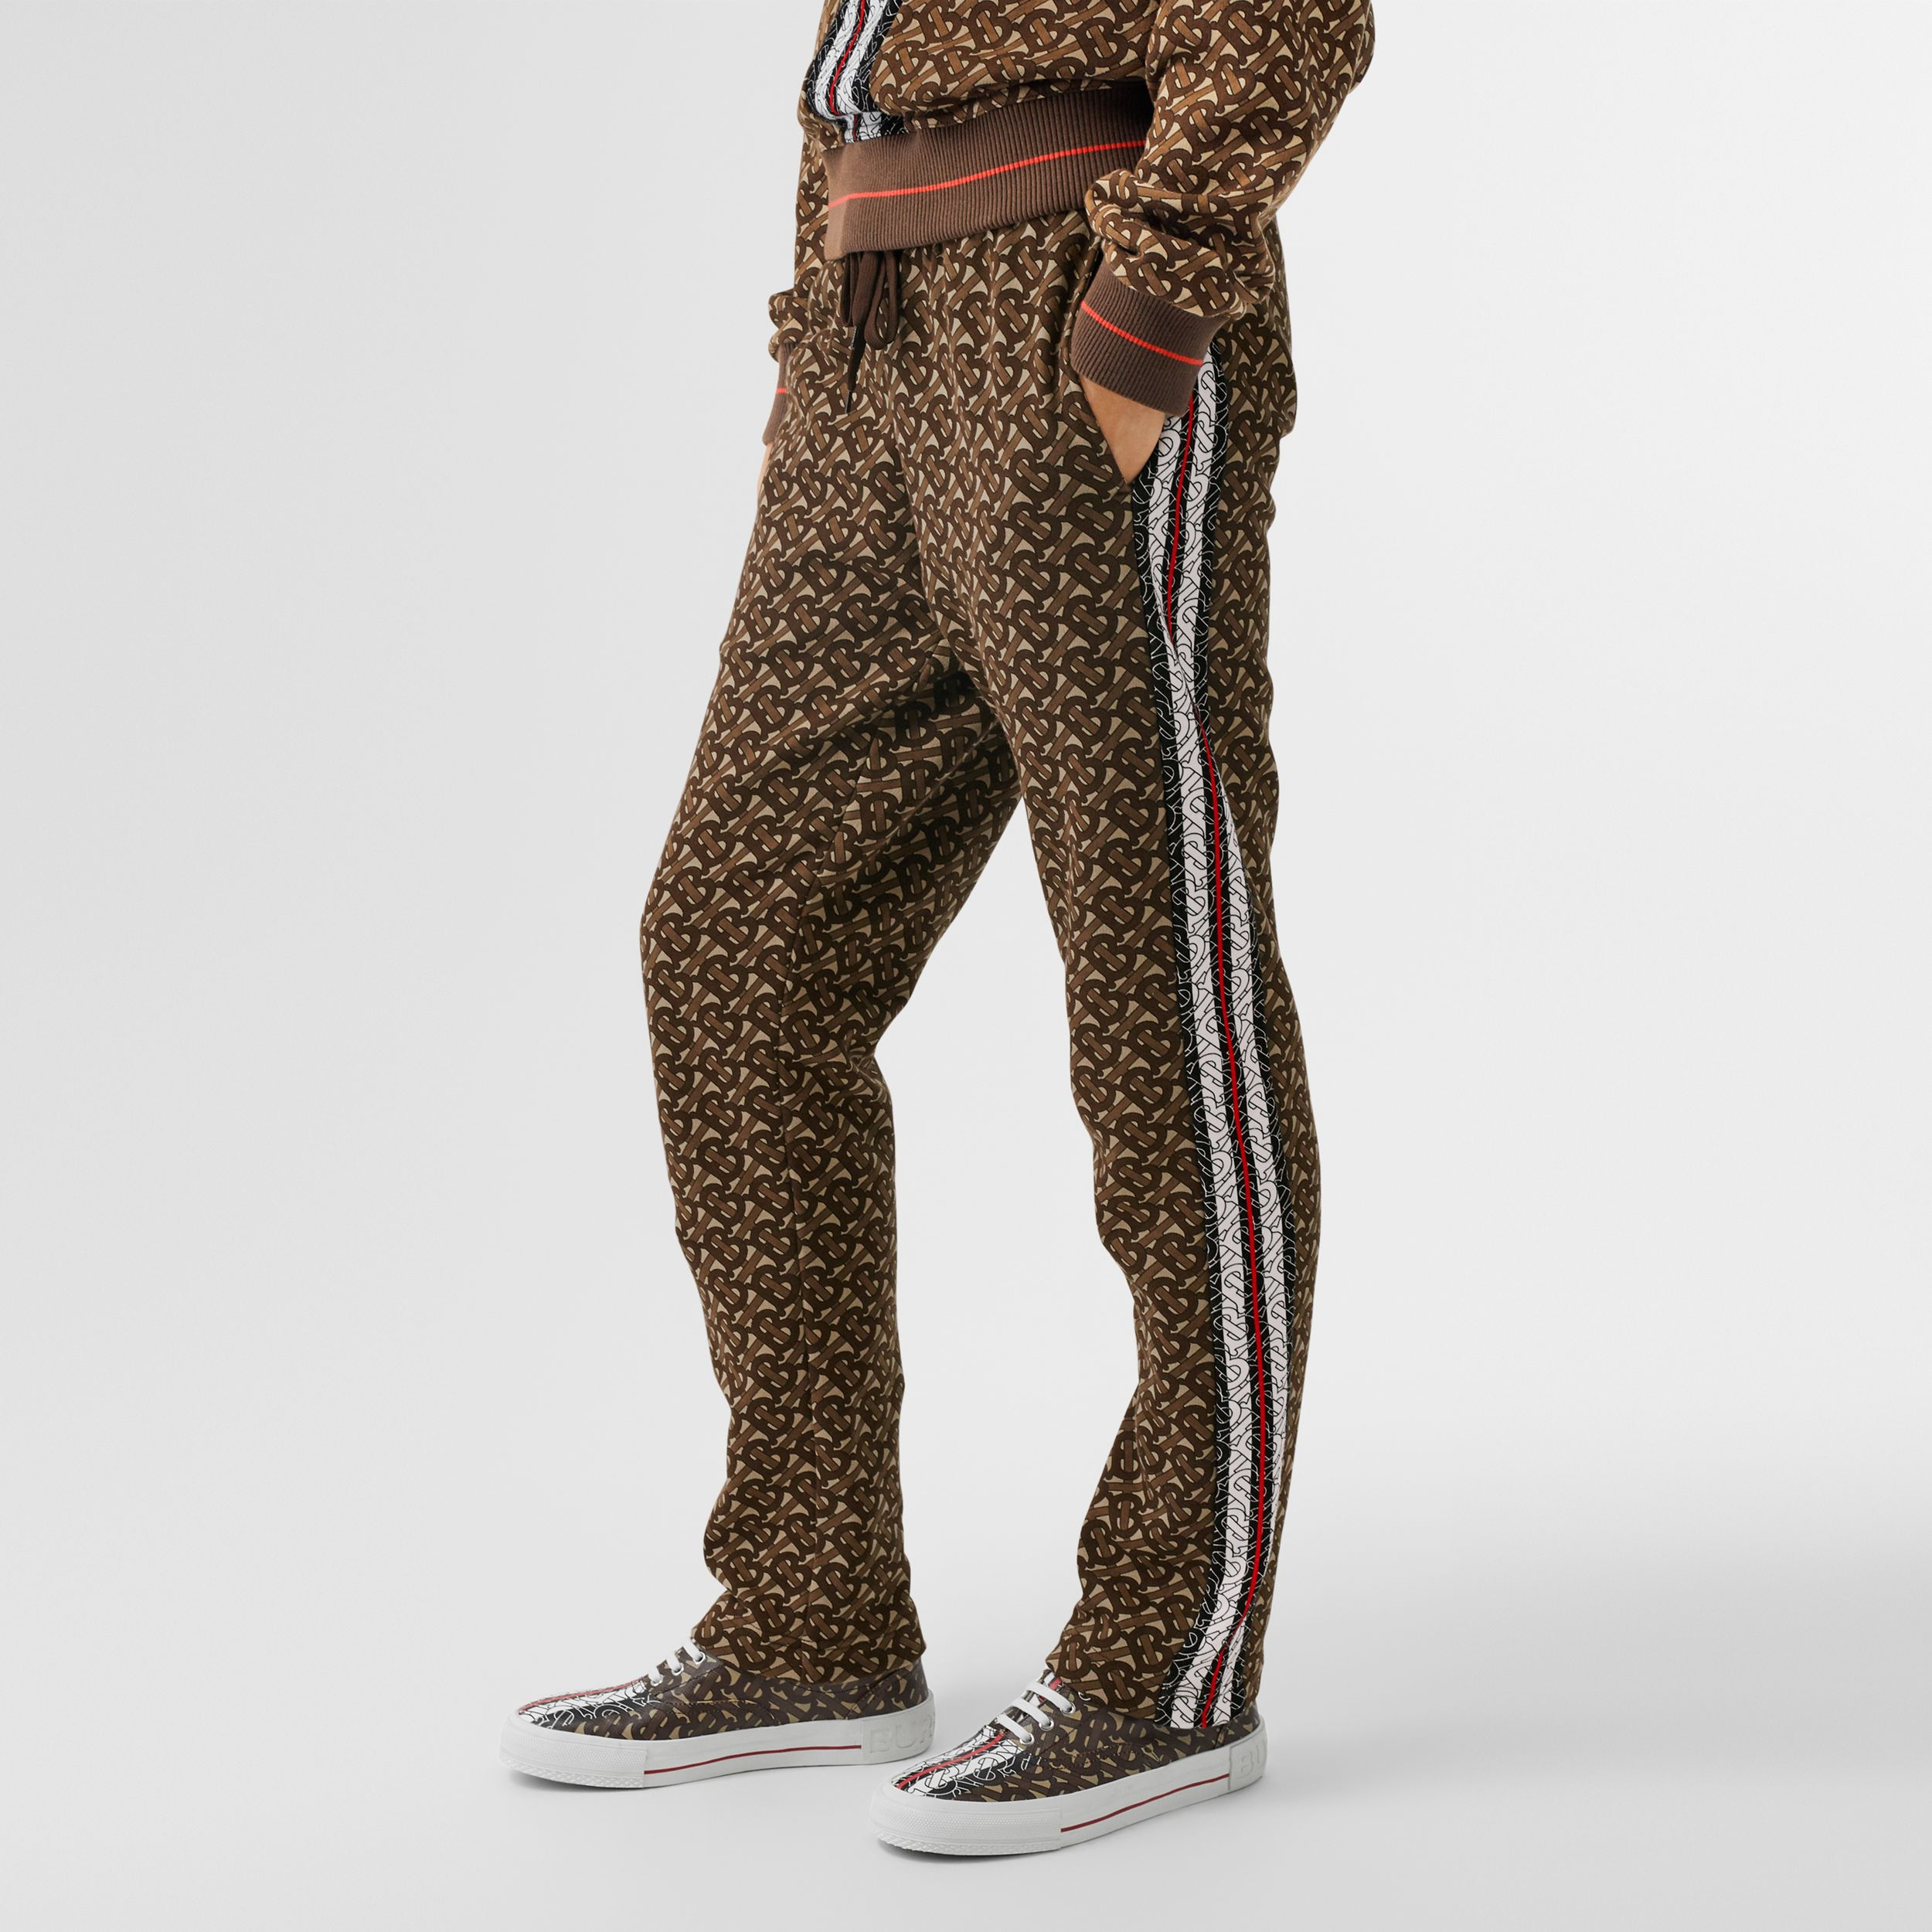 Monogram Stripe Print Cotton Jogging Pants in Bridle Brown - Women | Burberry - 1